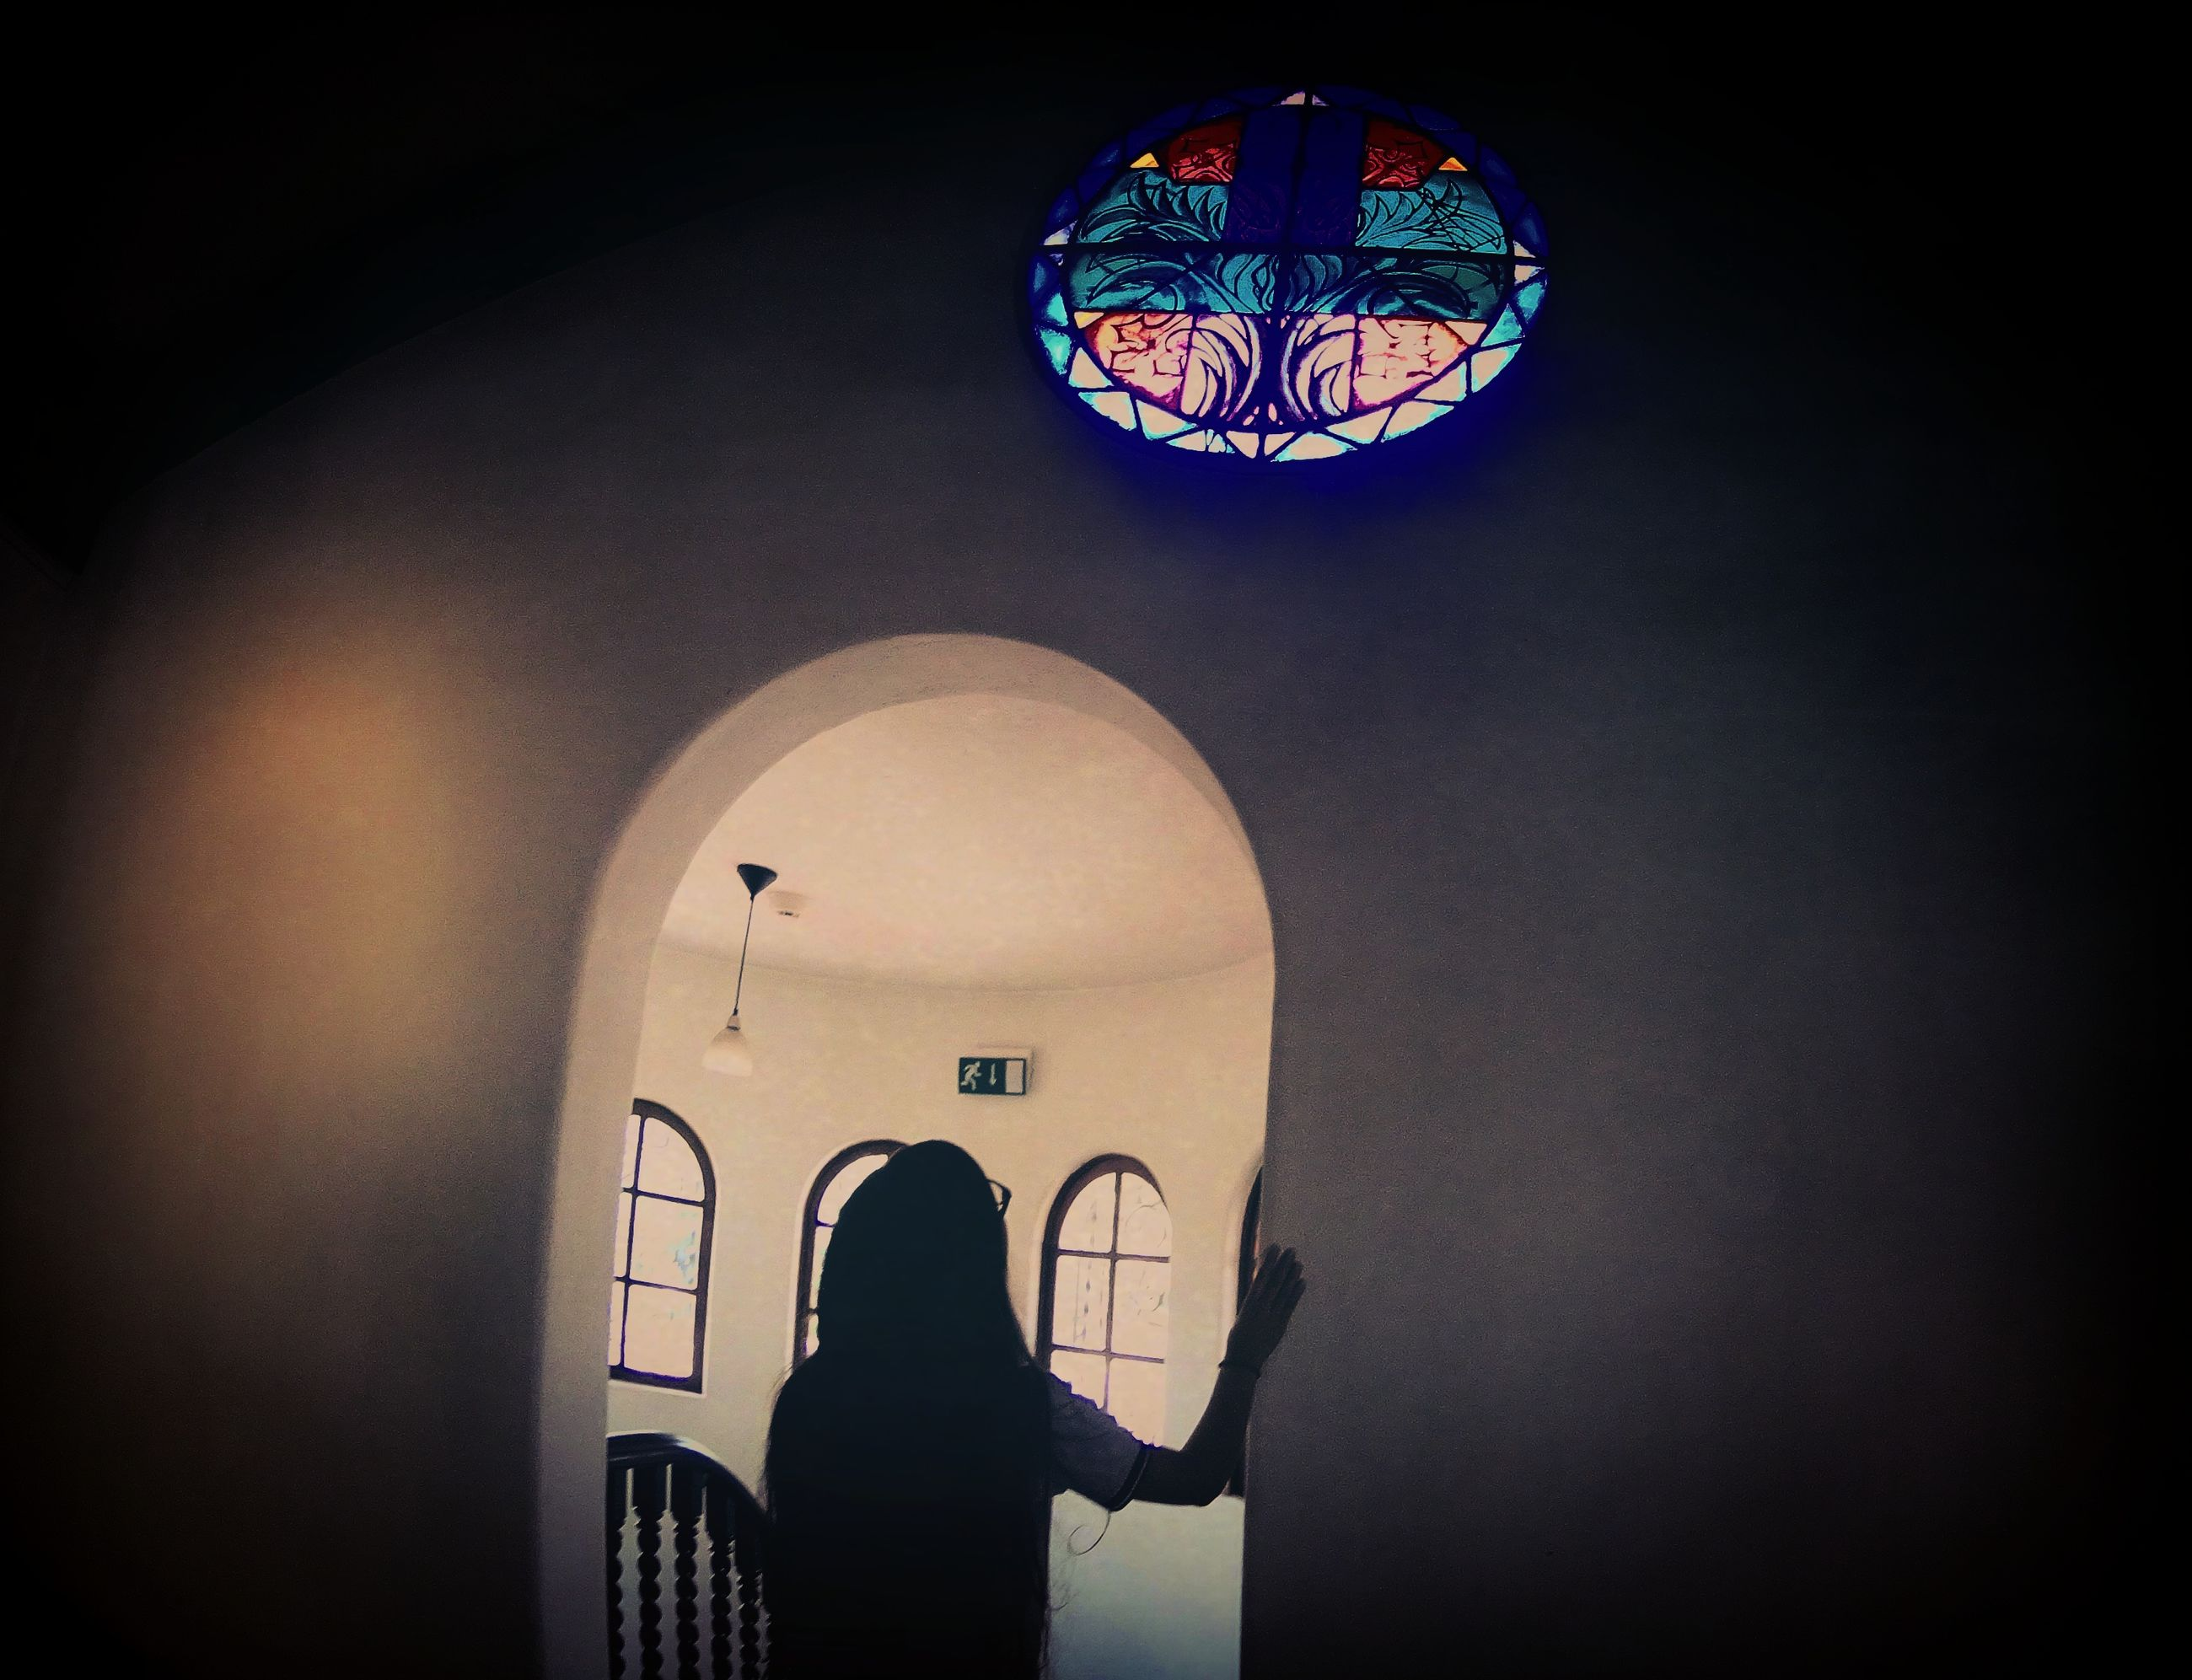 indoors, architecture, low angle view, built structure, arch, illuminated, religion, church, place of worship, night, spirituality, silhouette, leisure activity, dark, lifestyles, design